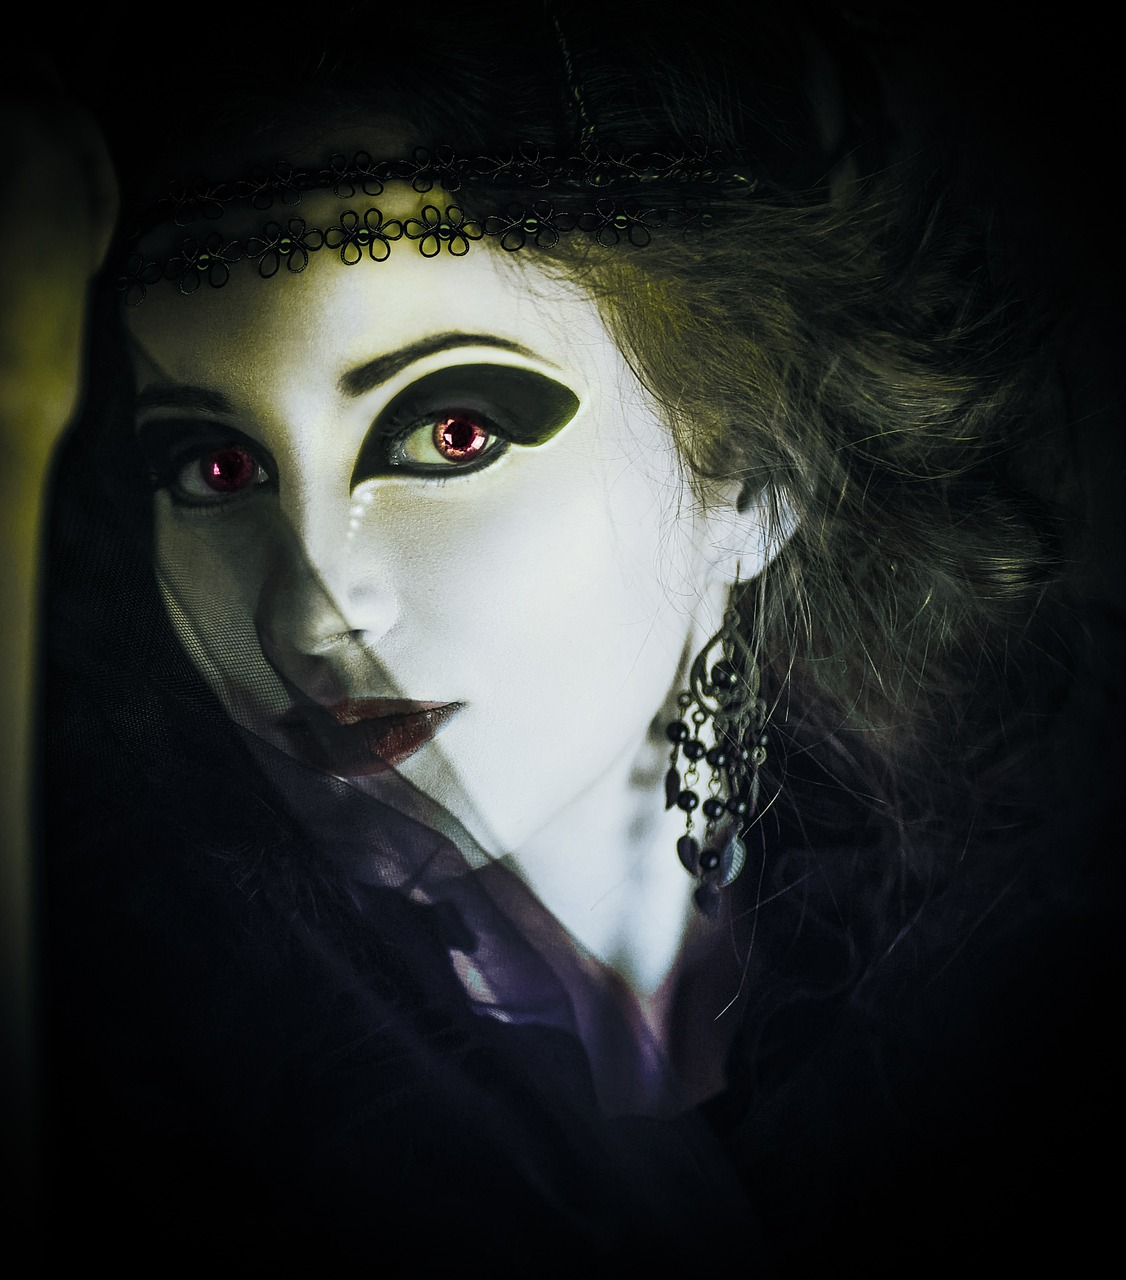 close up photo of a gothic woman with a black veil and heavy makeup